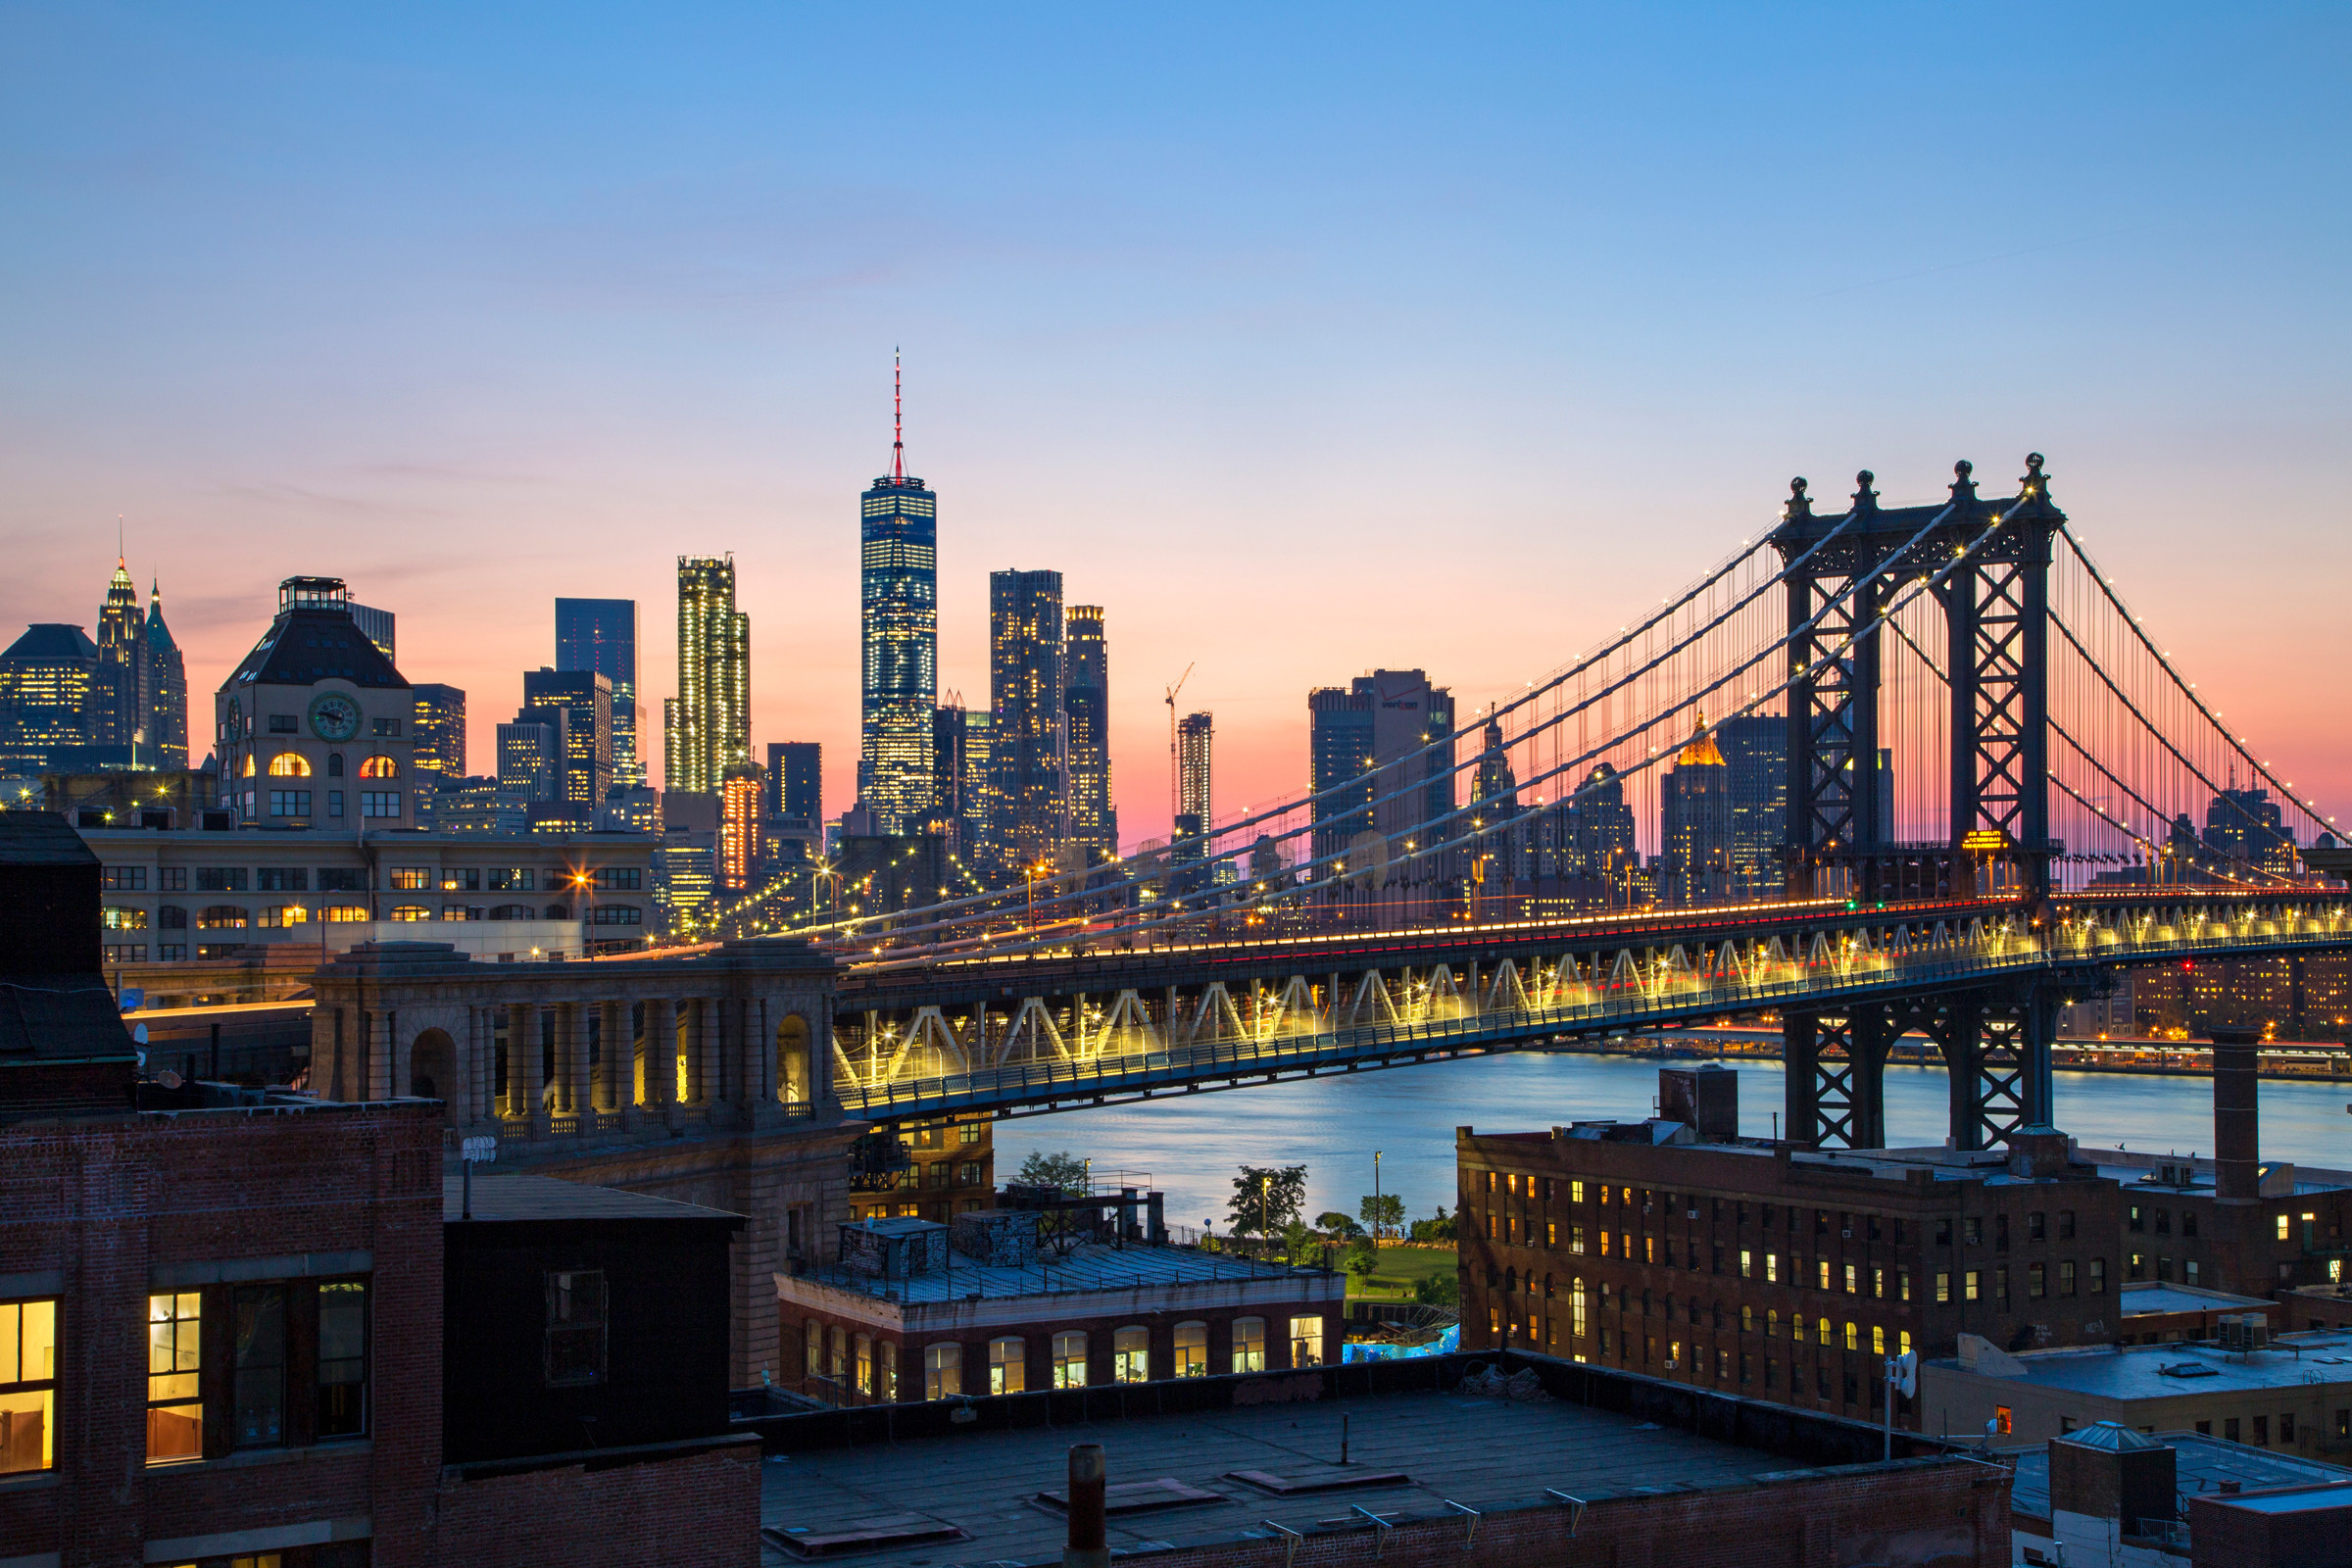 Rooftop views: Manhattan Bridge